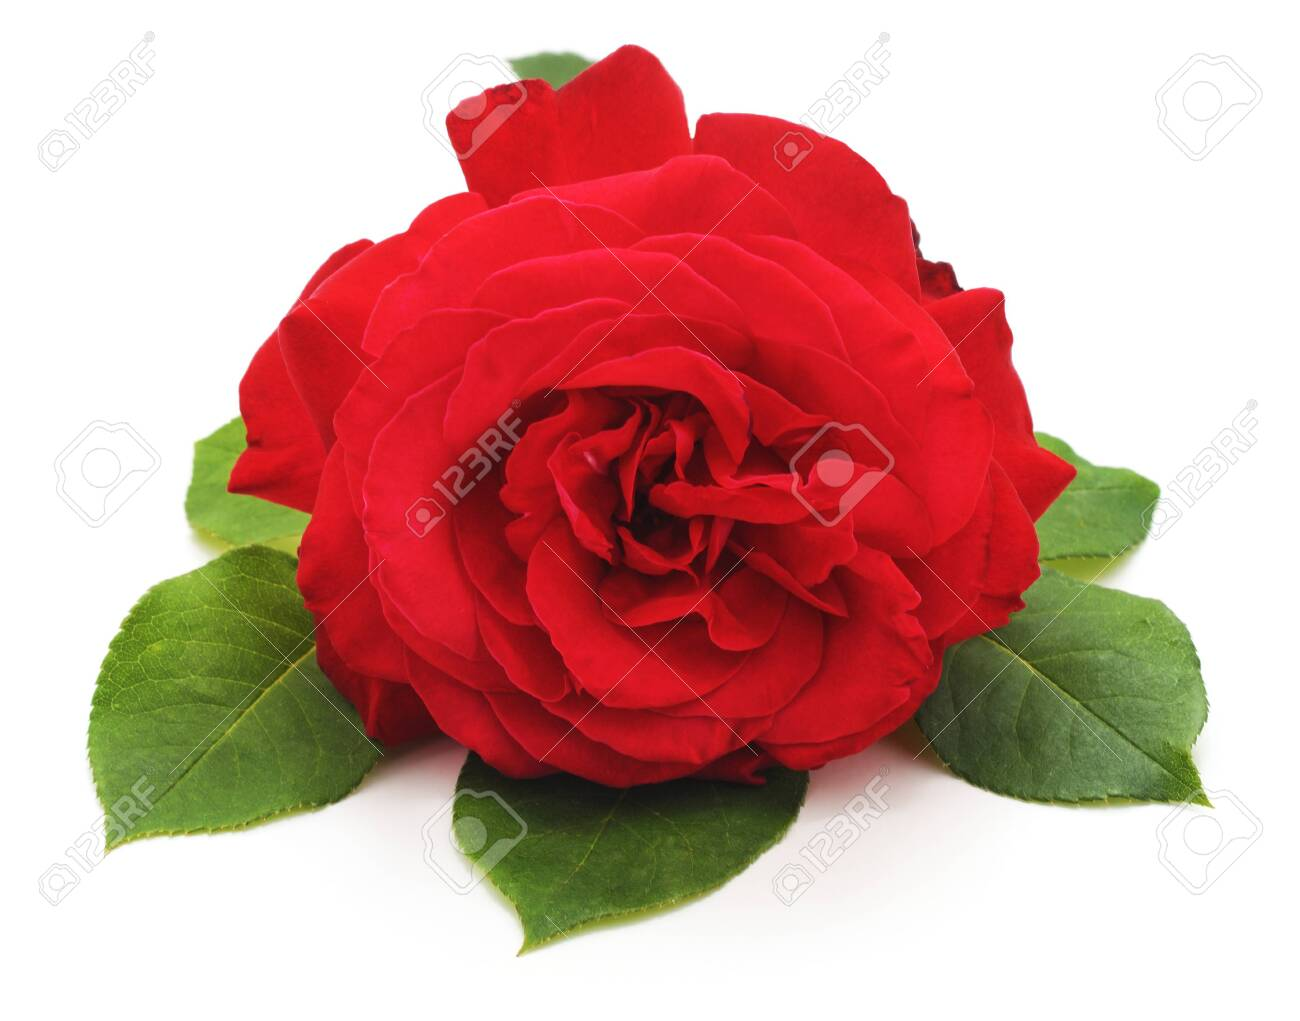 One red rose isolated on a white background. - 124457049